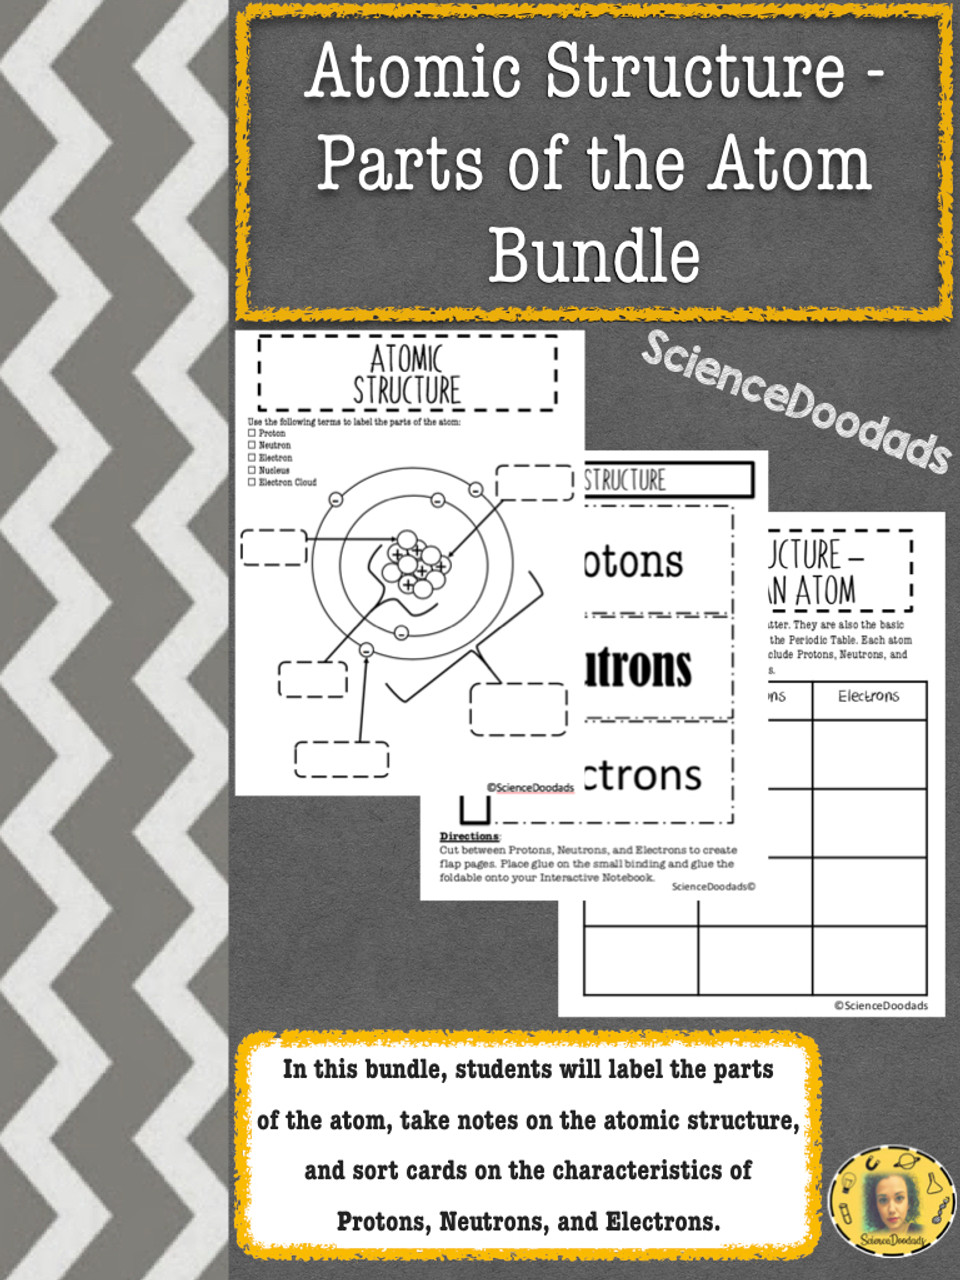 medium resolution of Atomic Structure - Parts of the Atom - Bundle - Amped Up Learning